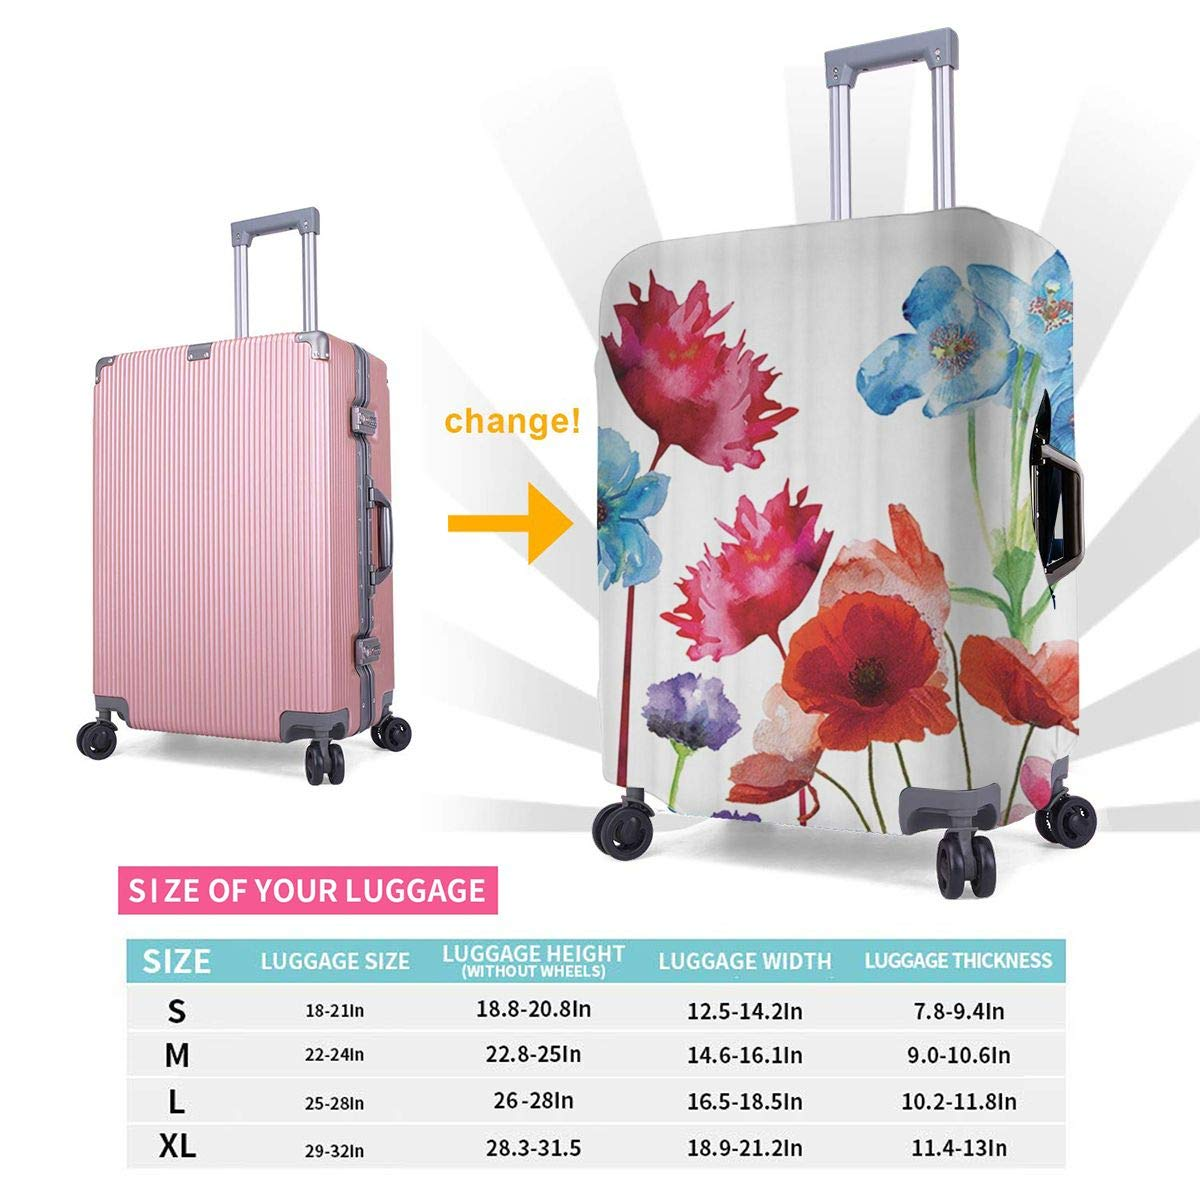 JHNDKJS Blossom Travel Luggage Cover Baggage Suitcase Protector Fit for 12-18 Inch Luggage